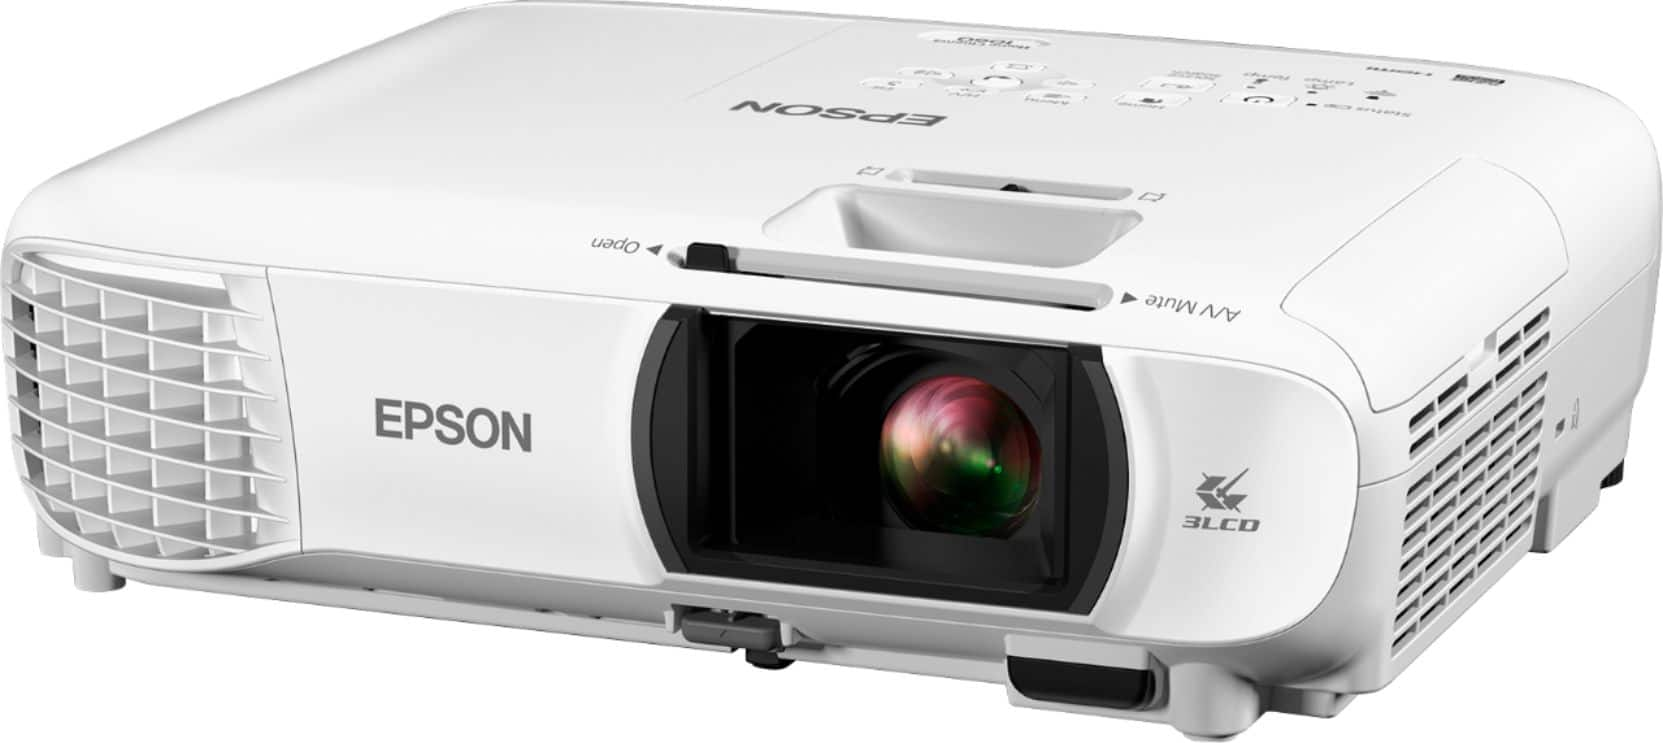 Epson Refurbished PowerLite Home Cinema 1060 1080p 3LCD Projector White EPSON HC 1060 REFRB V11H849020 - Best Buy $400